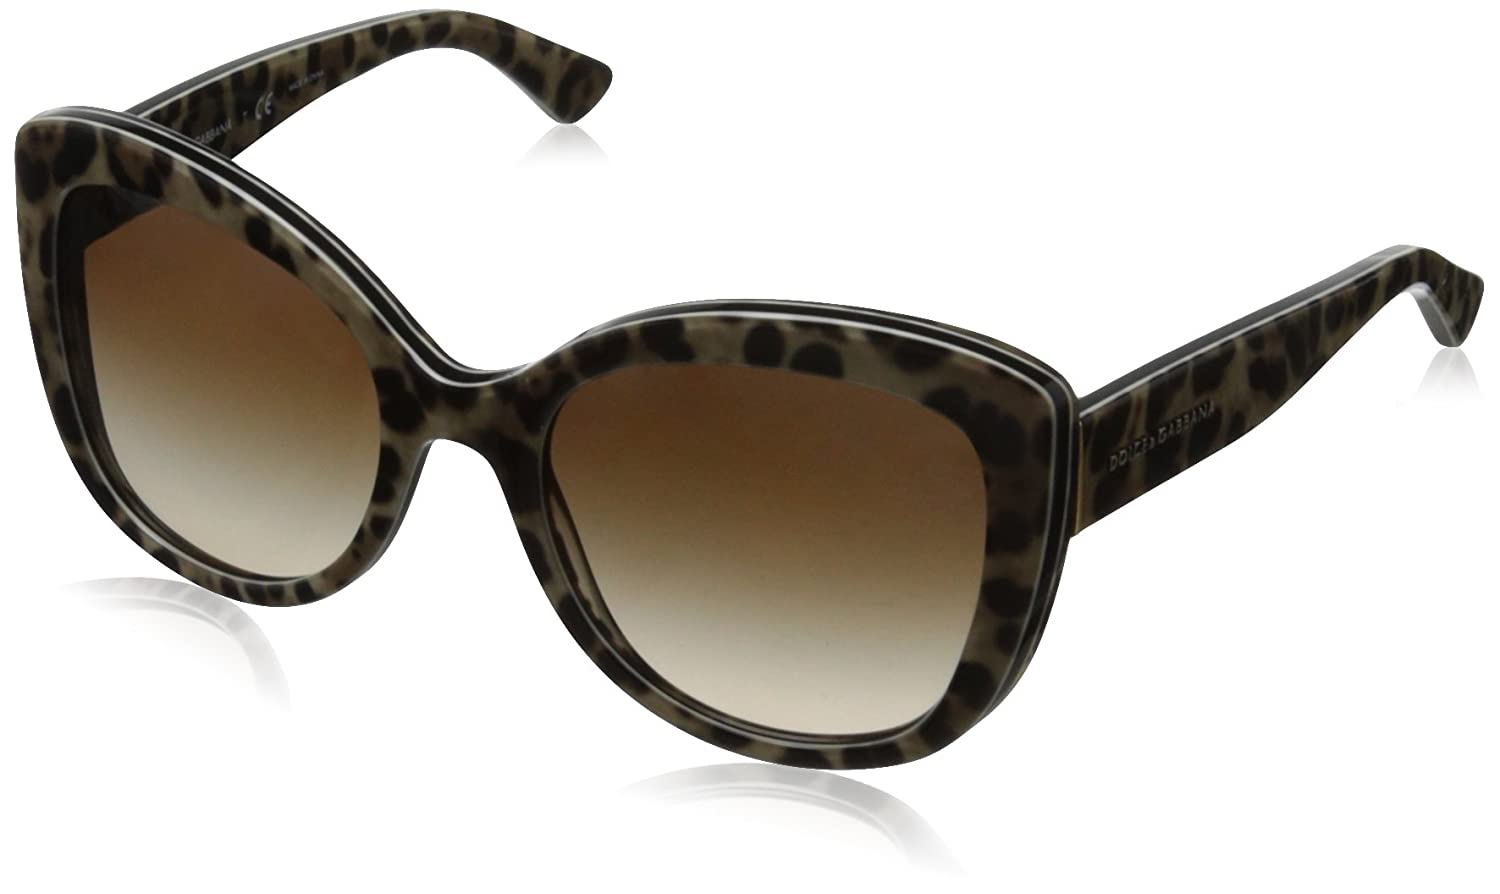 52616ebd70f4 Dolce   Gabbana Sunglasses Enchanted Beauties Top Leo On Leo